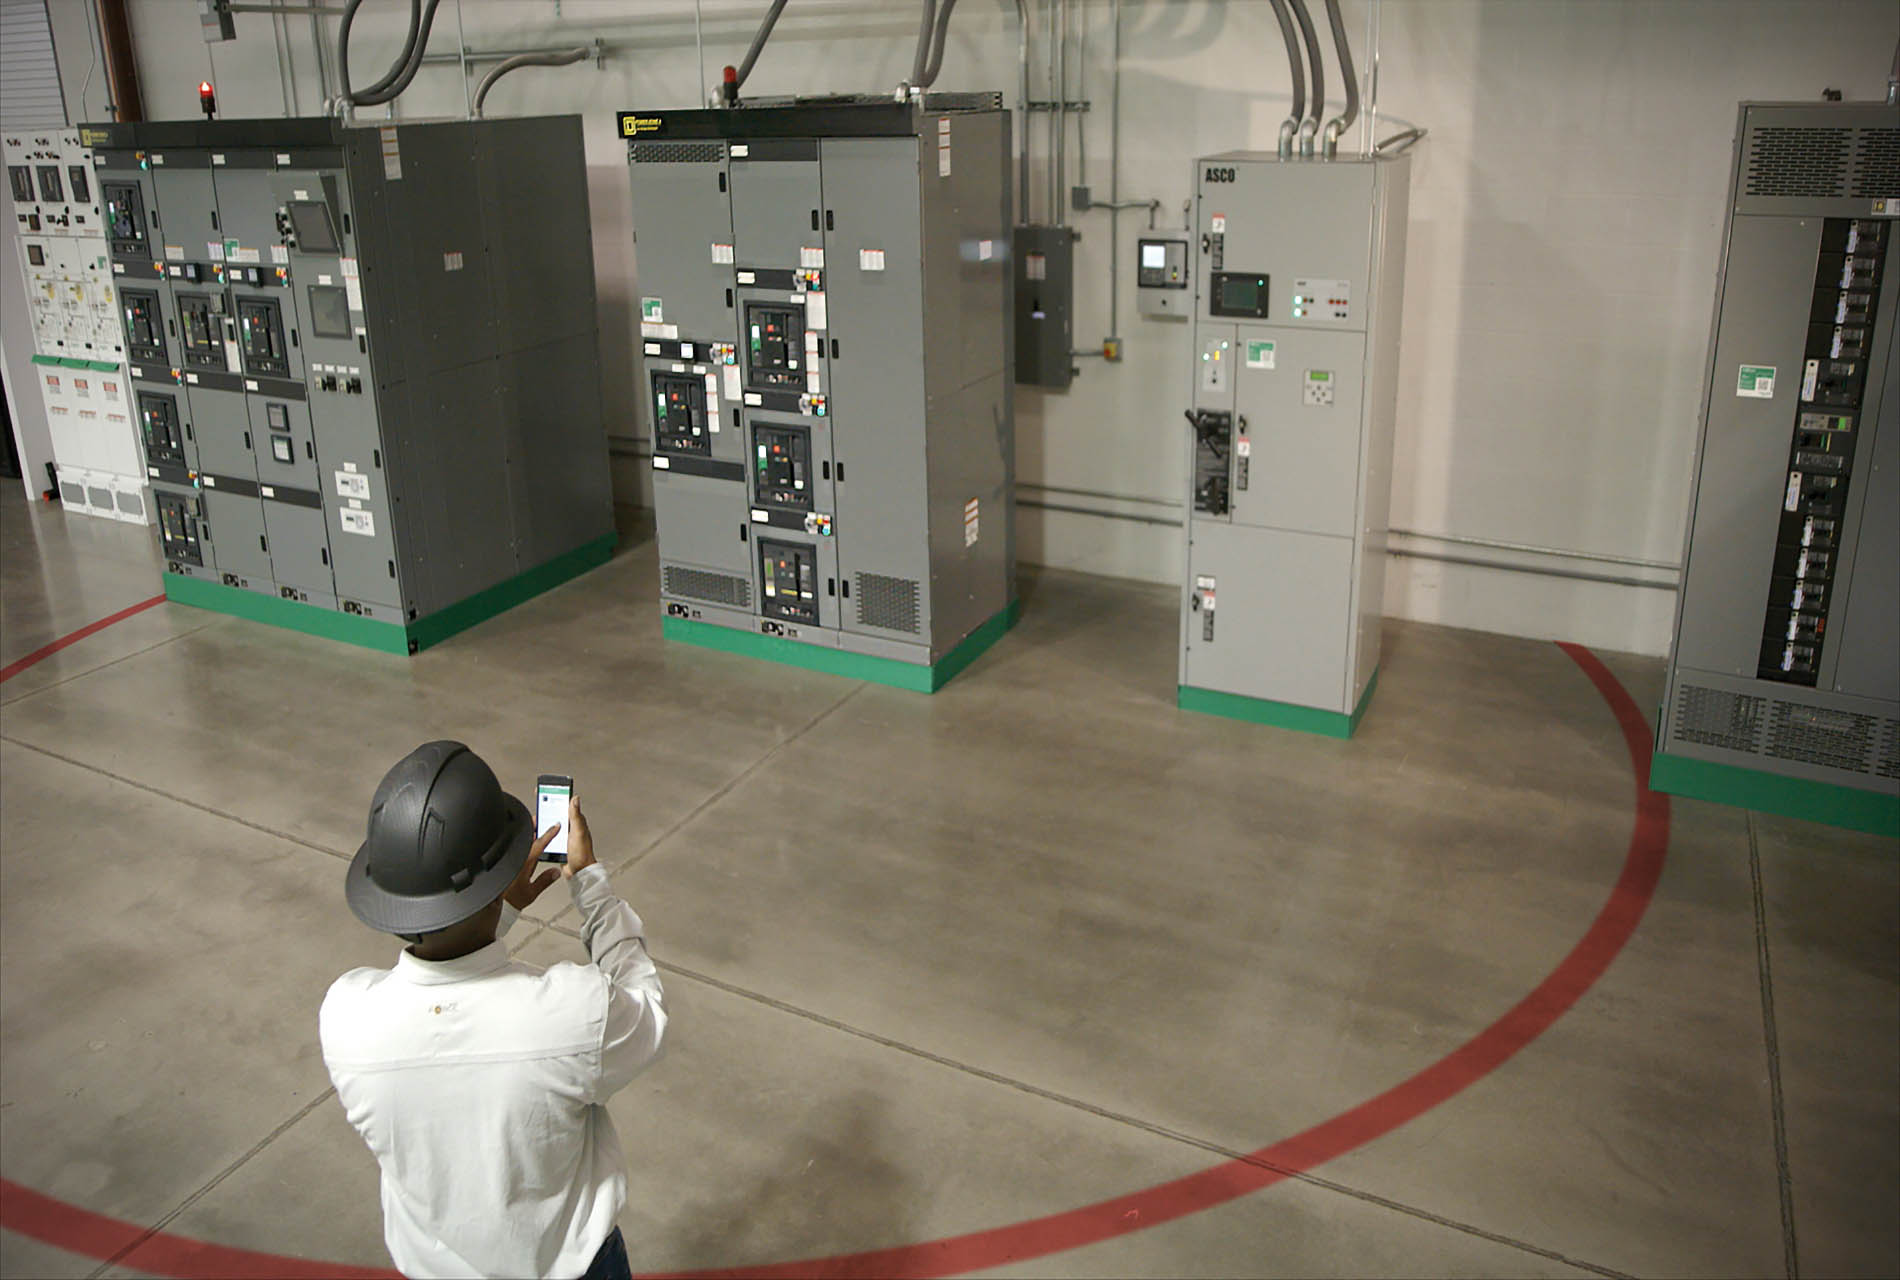 Schneider Electric's MasterPact circuit breakers can be operated remotely using Bluetooth.